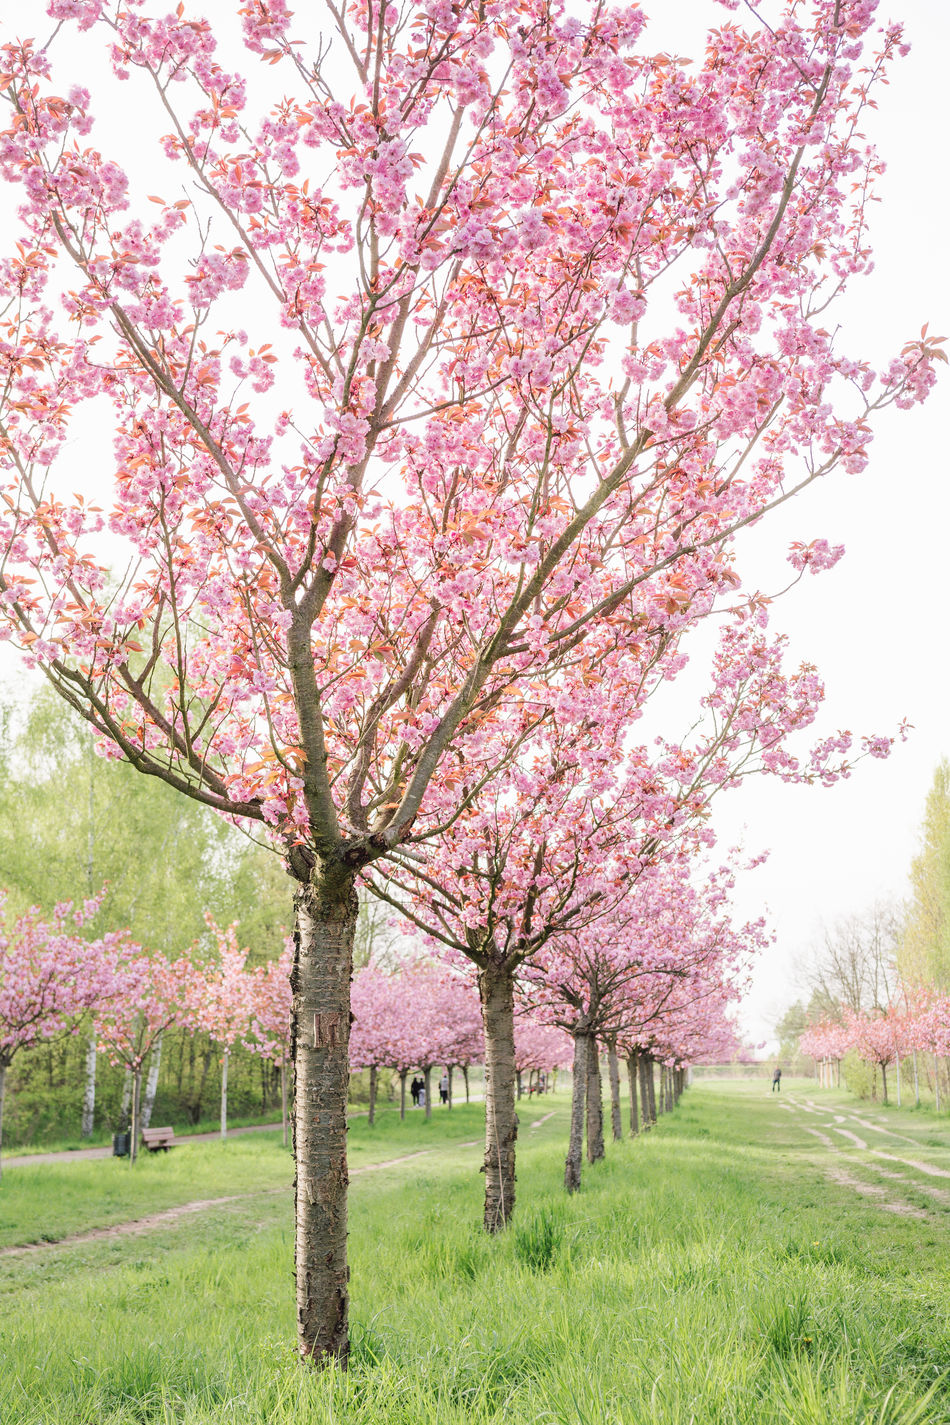 japanese cherry blossoms Beauty In Nature Berlin Blossom Branch Cherry Tree Day Field Flower Fragility Freshness Grass Grassland Growth Nature No People Orchard Outdoors Pink Color Scenics Spring 2017 Spring Into Spring Springtime Tranquil Scene Tranquility Tree